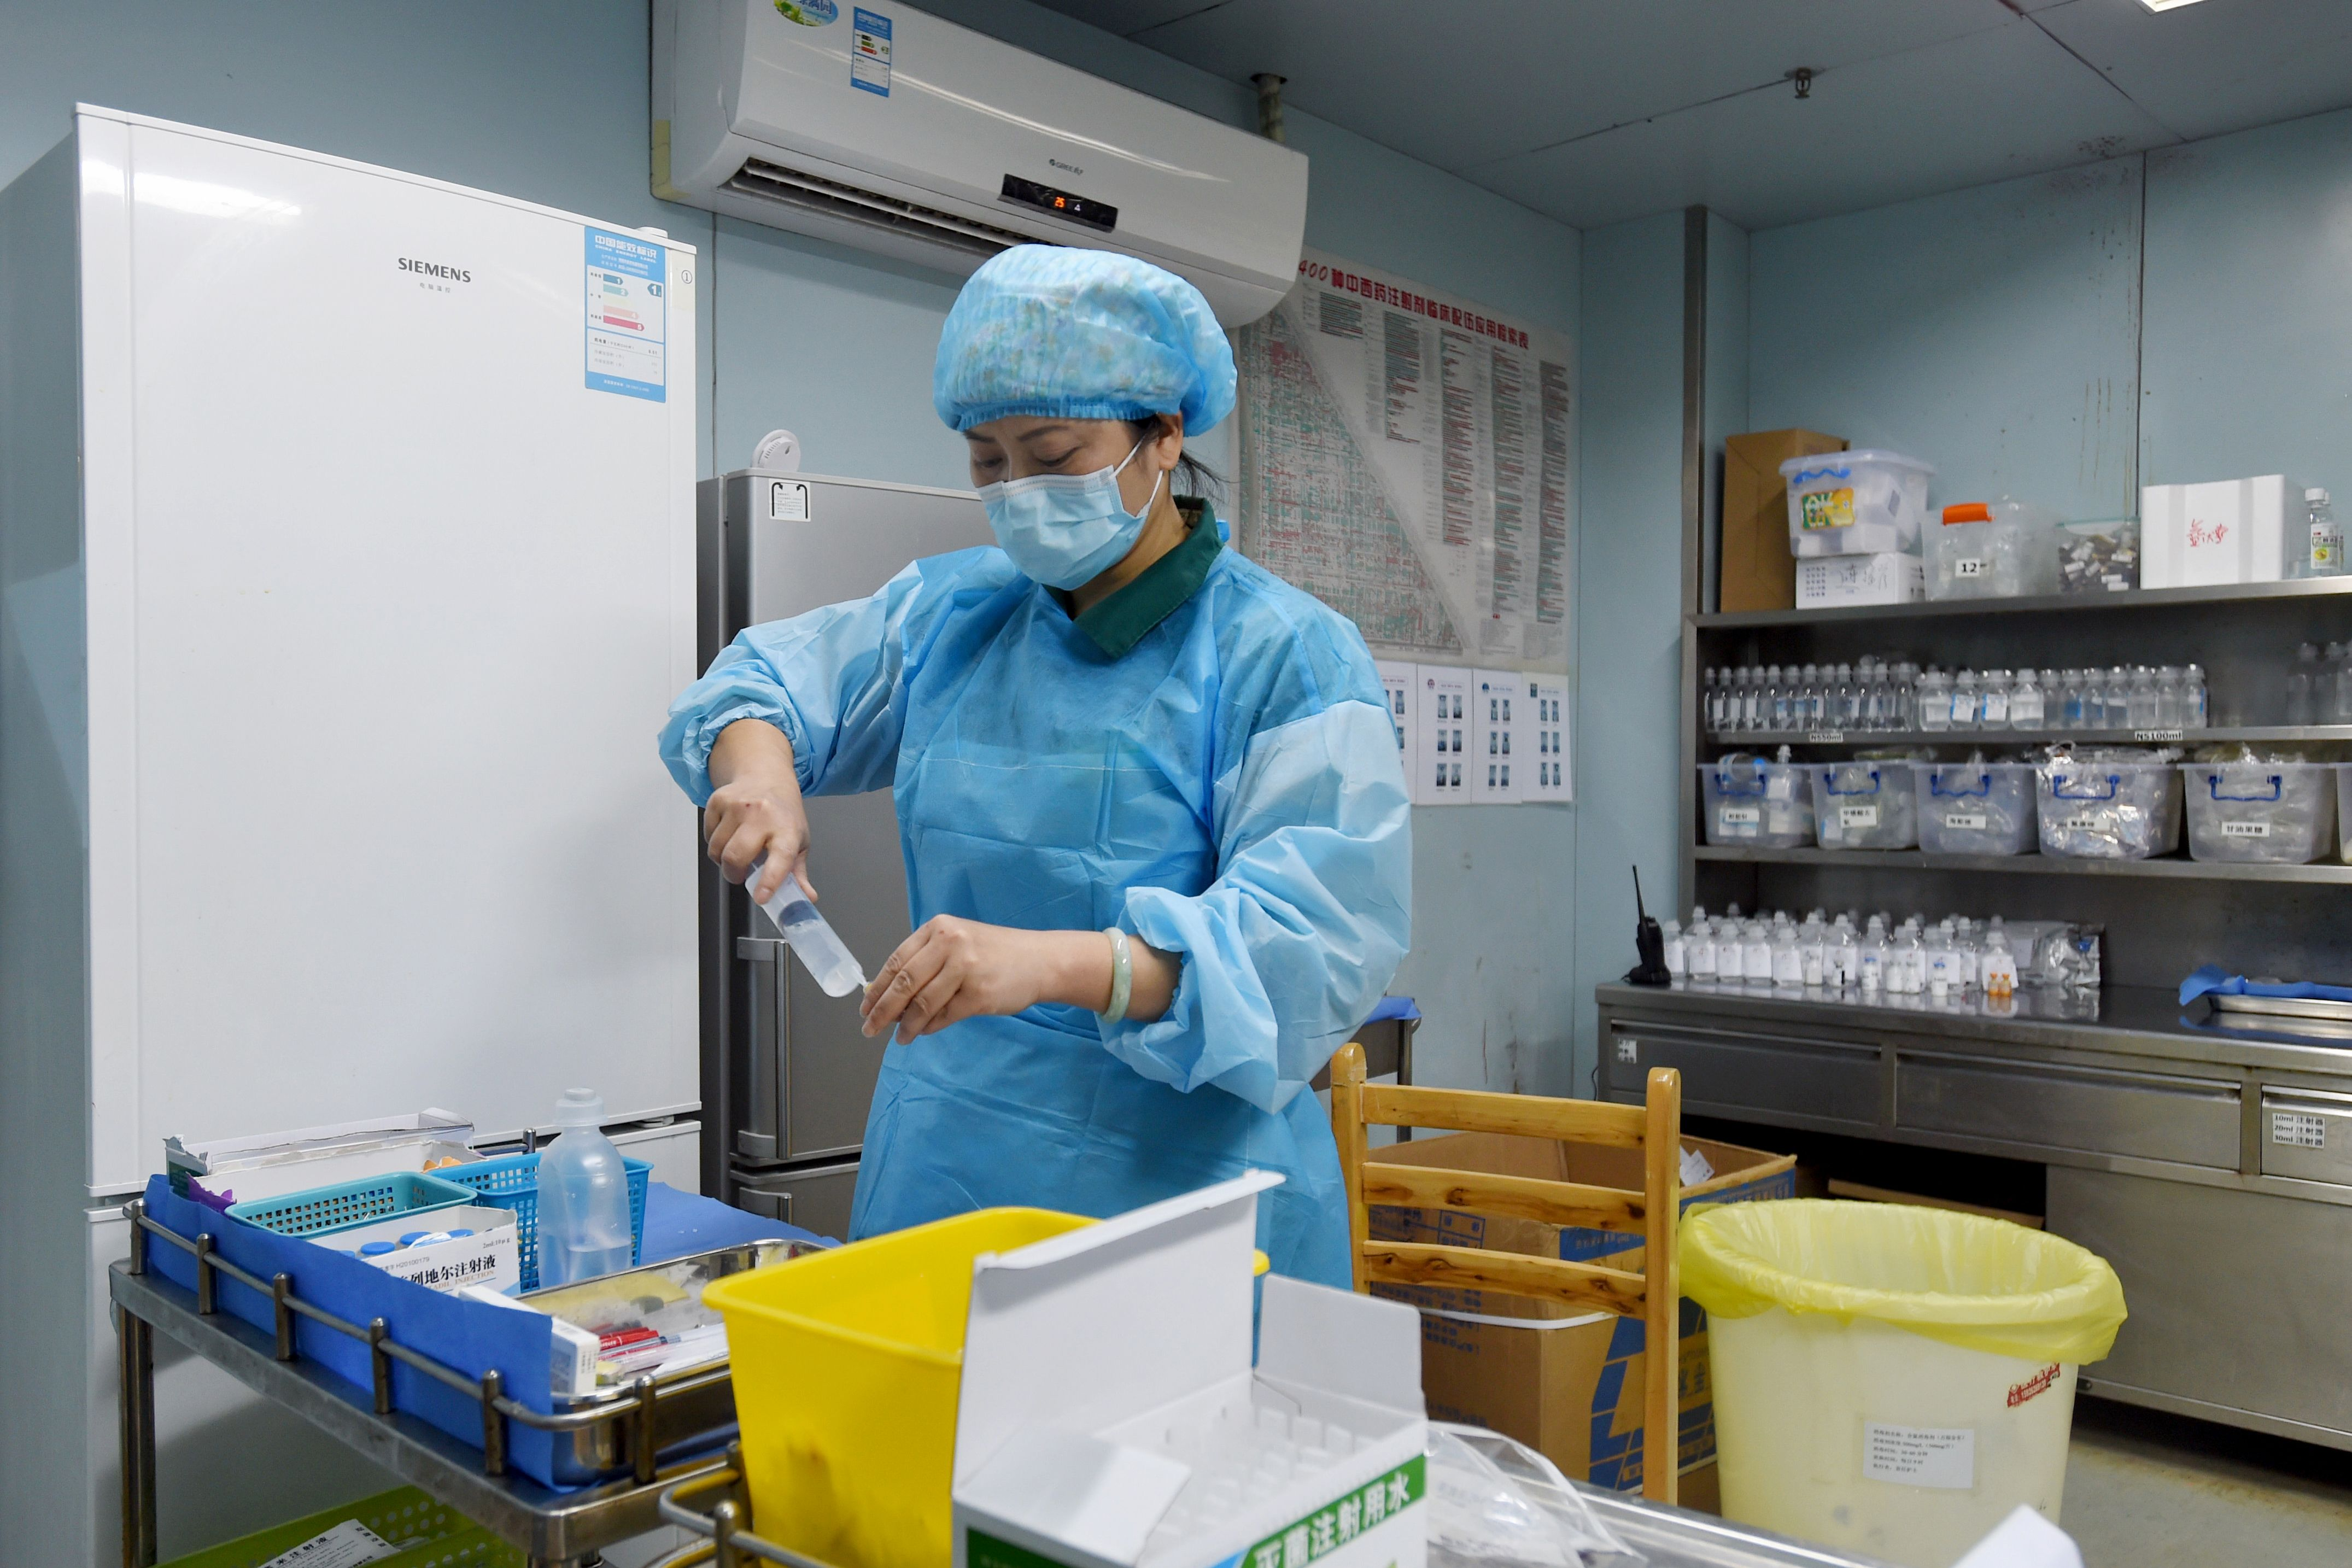 A nurse prepares medication for an H7N9 bird flu patient in a hospital in Wuhan, central China's Hubei province on Feb. 12.